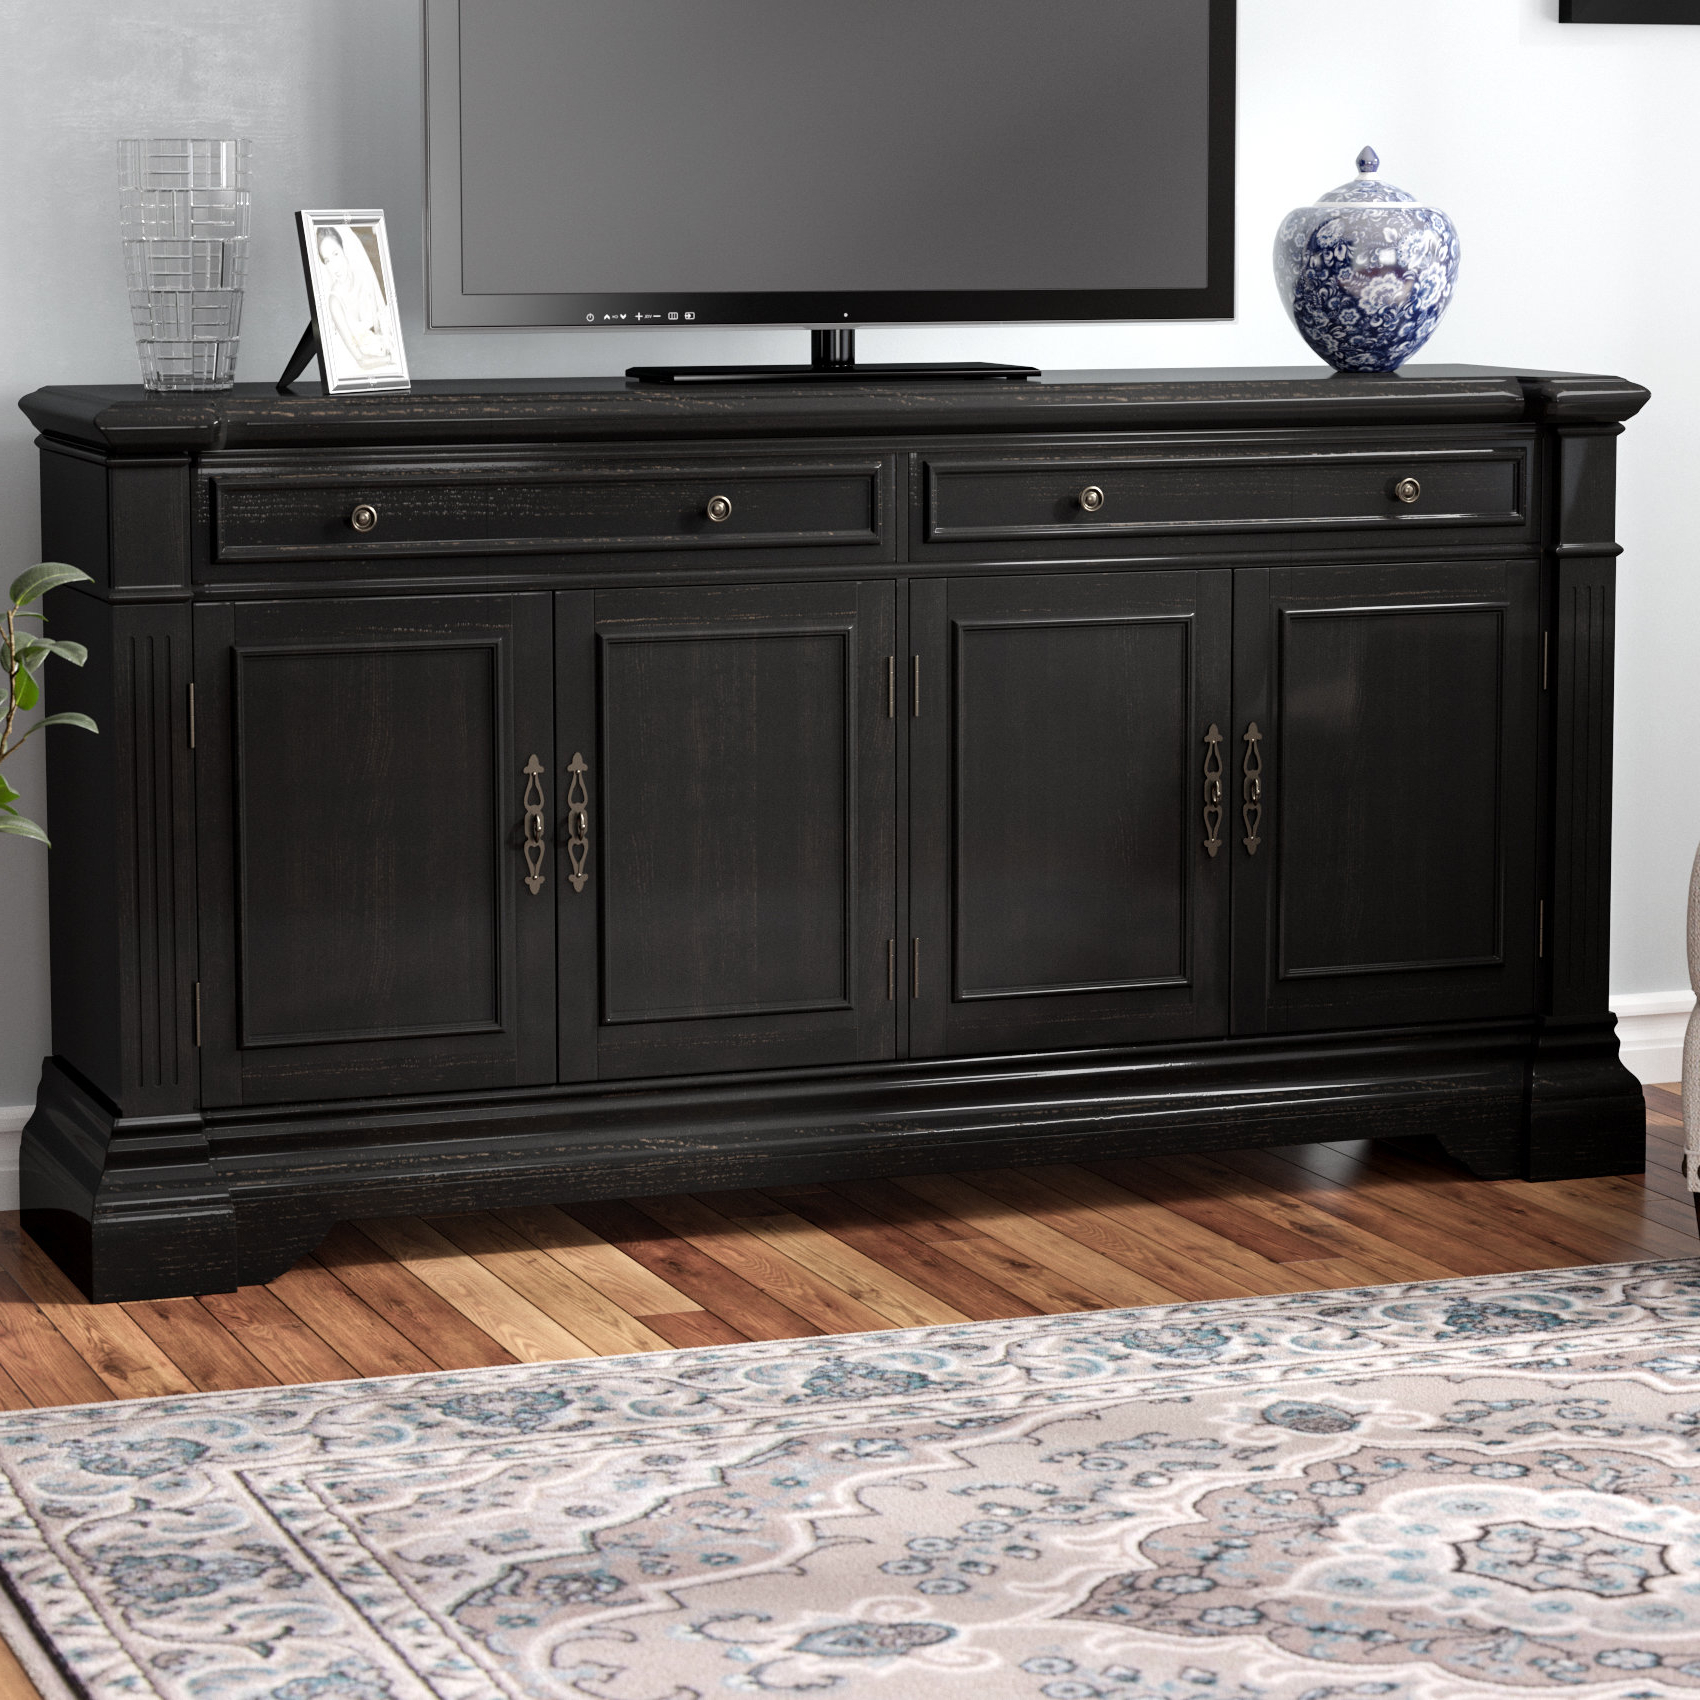 Tall Tv Stands You'll Love | Wayfair Intended For Canyon 54 Inch Tv Stands (Gallery 18 of 20)